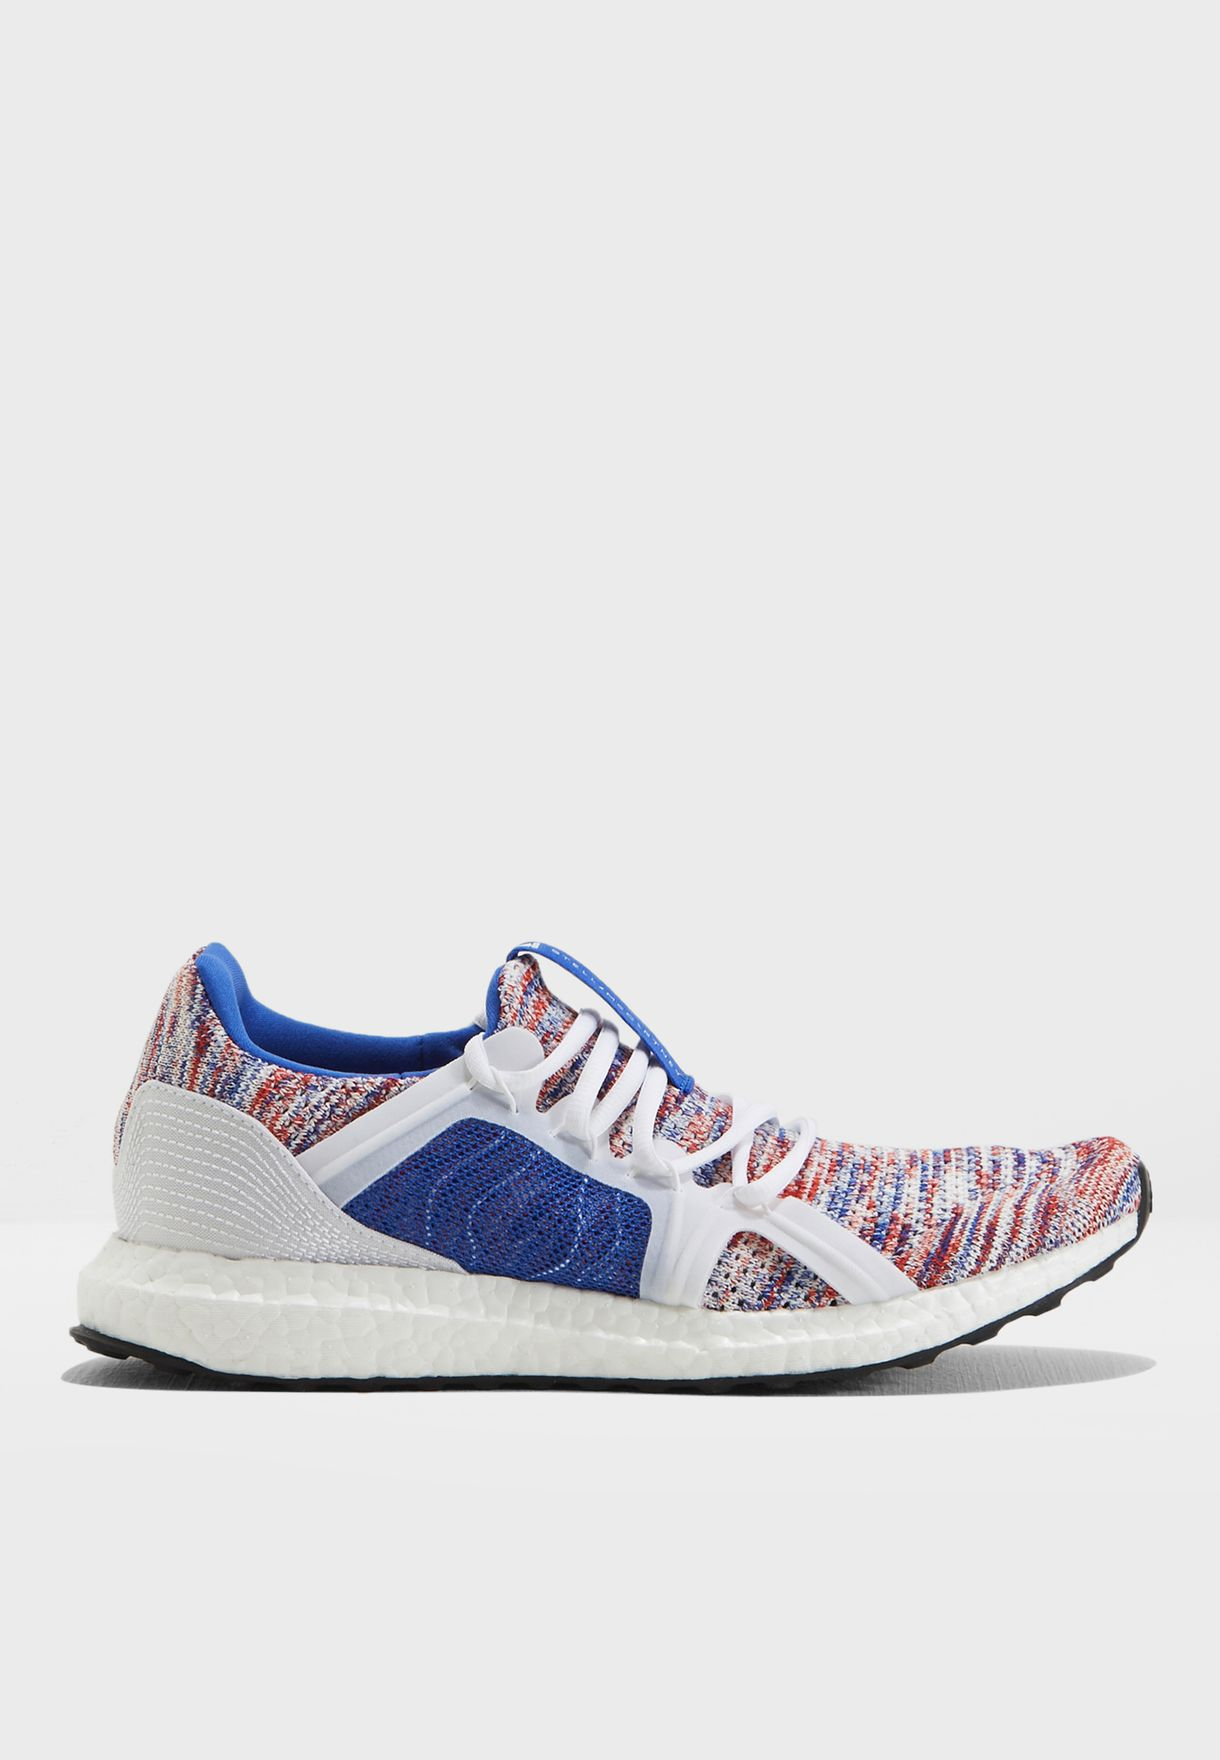 644a50cf250 Shop adidas by Stella McCartney multicolor Ultraboost Parley CQ1708 ...